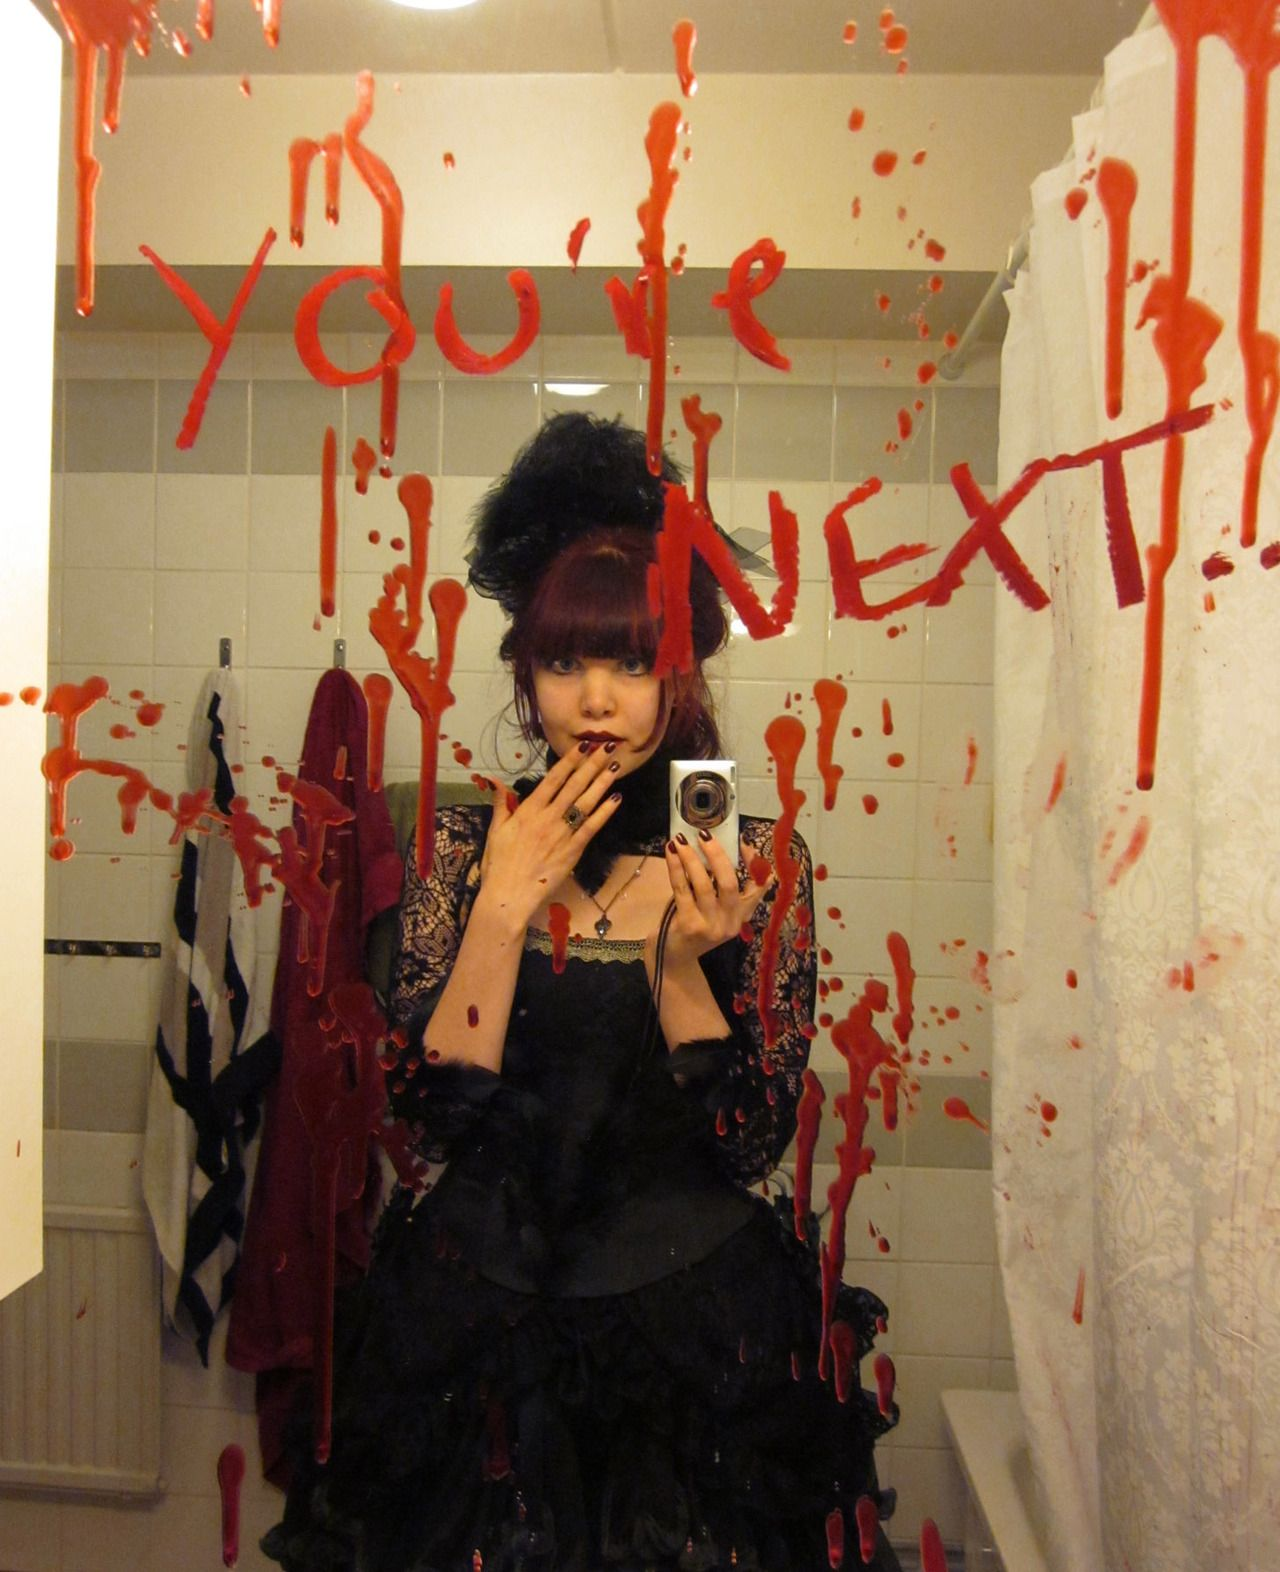 From the party last night, in a bloody bathroom! Um, that is not ...